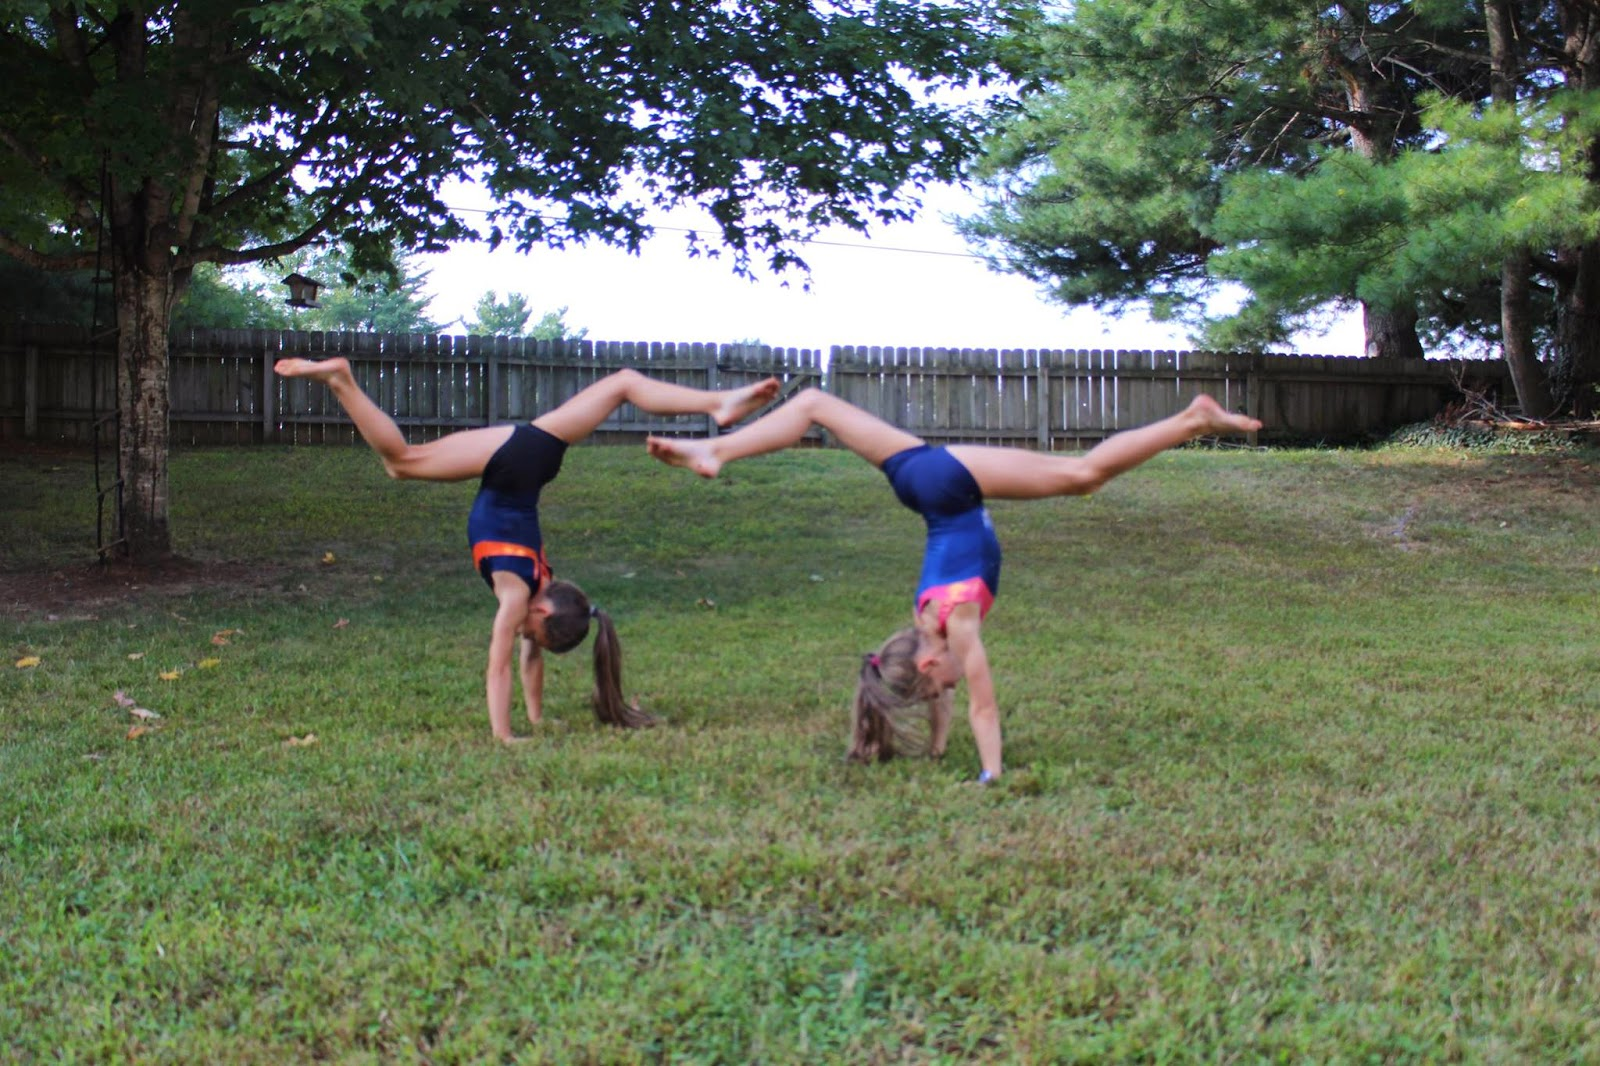 Traveling Handstands: How Did You Spend National Gymnastics Day?